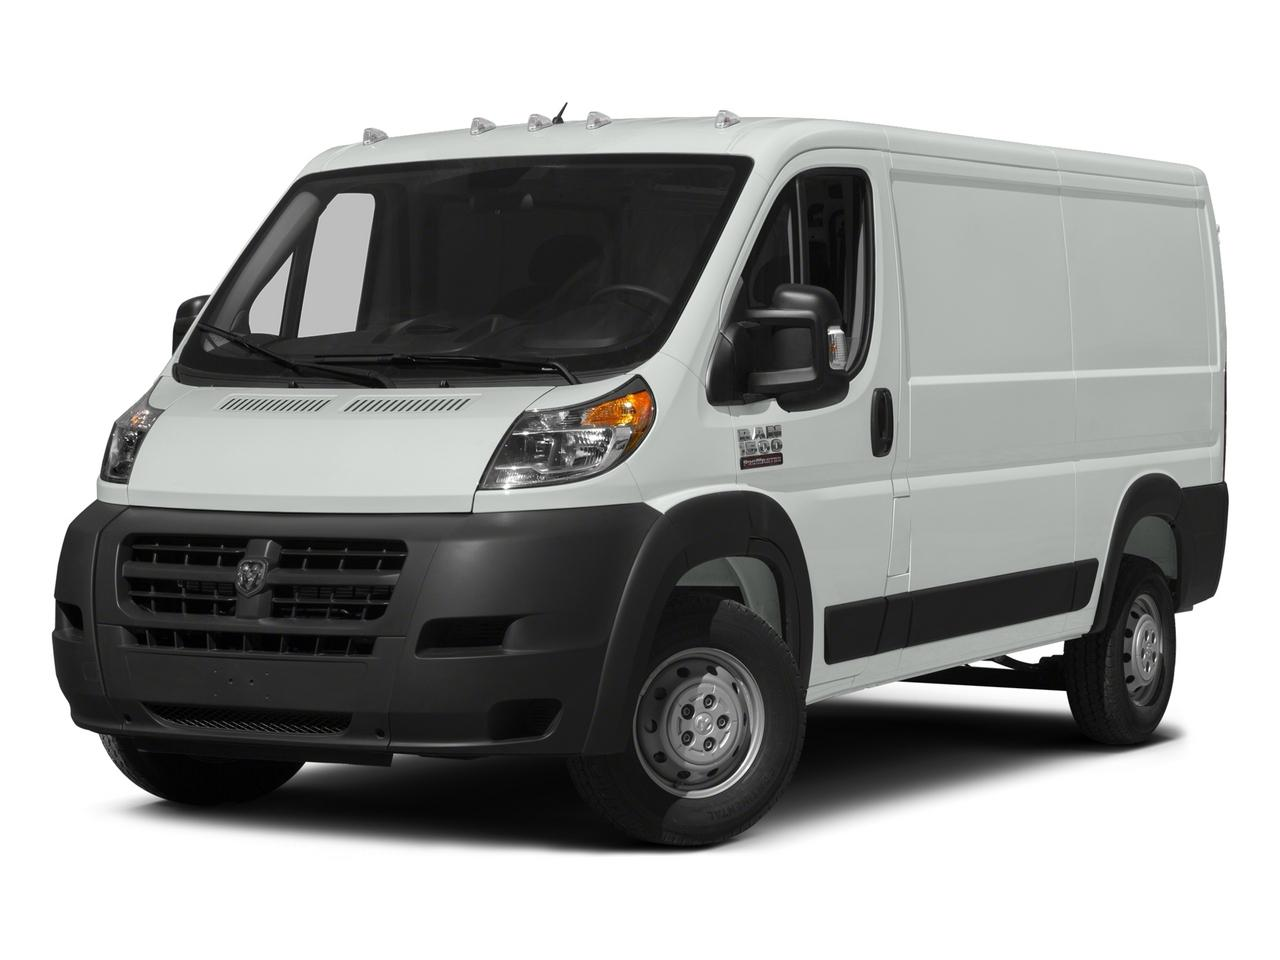 2015 Ram ProMaster Vehicle Photo in Washington, NJ 07882